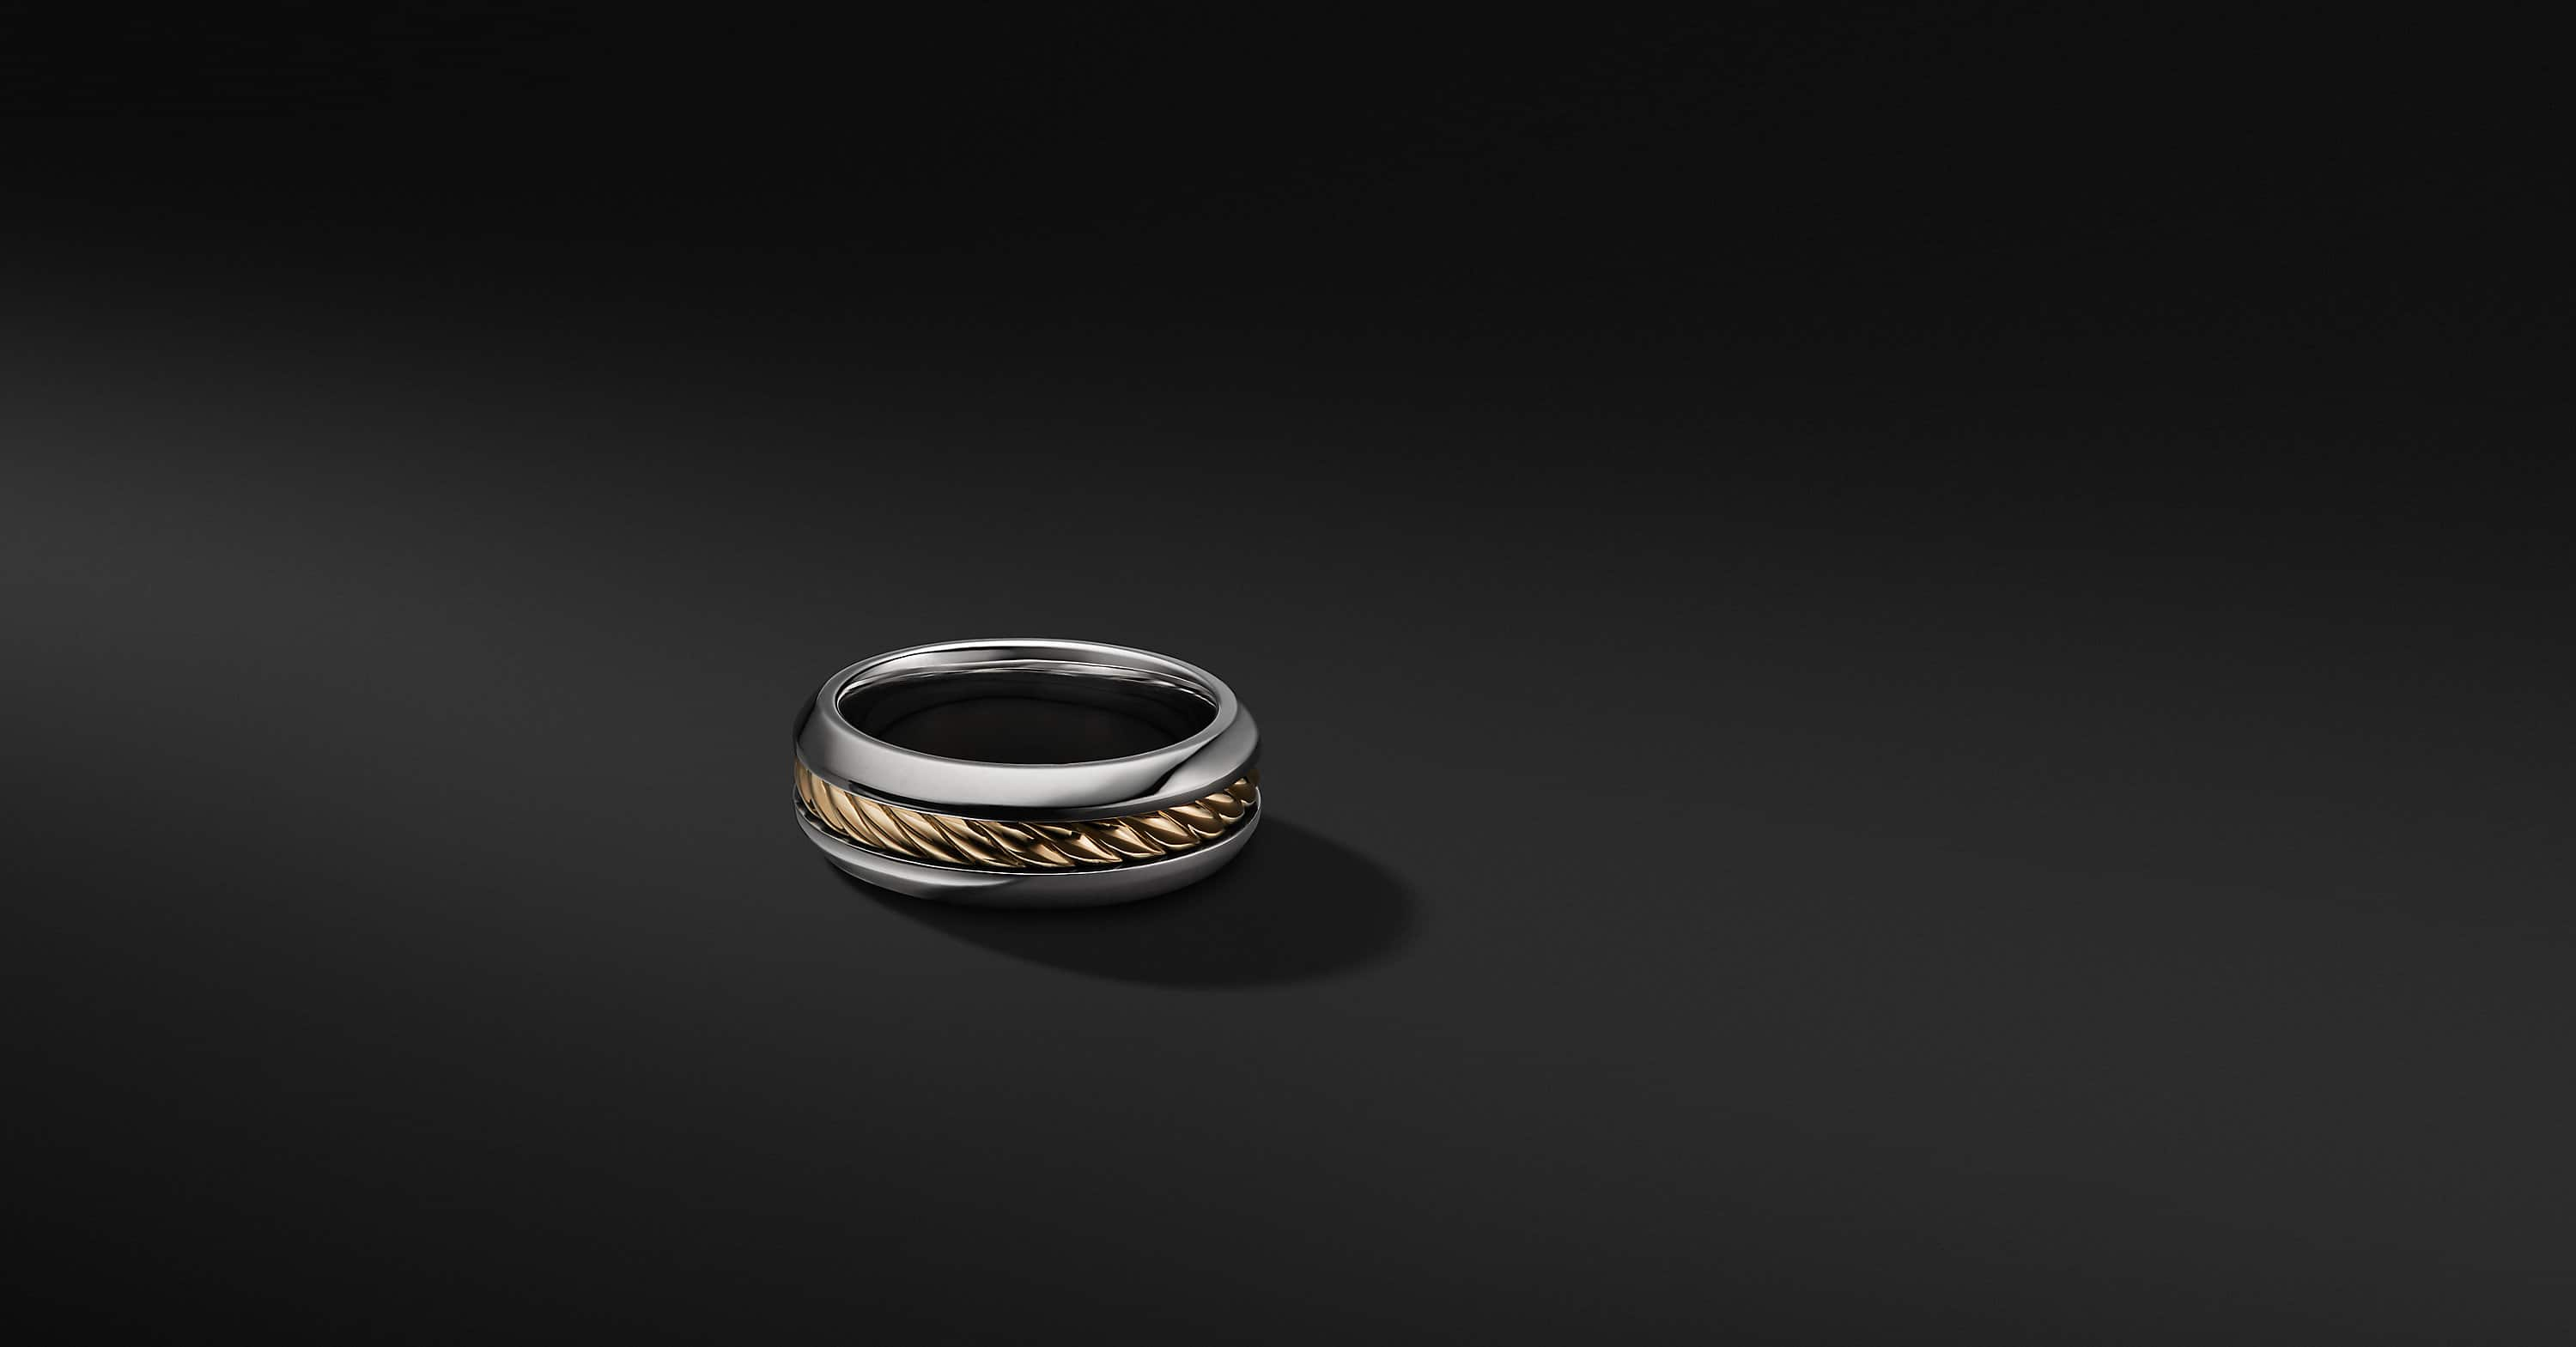 Cable Inset Band in Sterling Silver and 18K Gold, 8mm